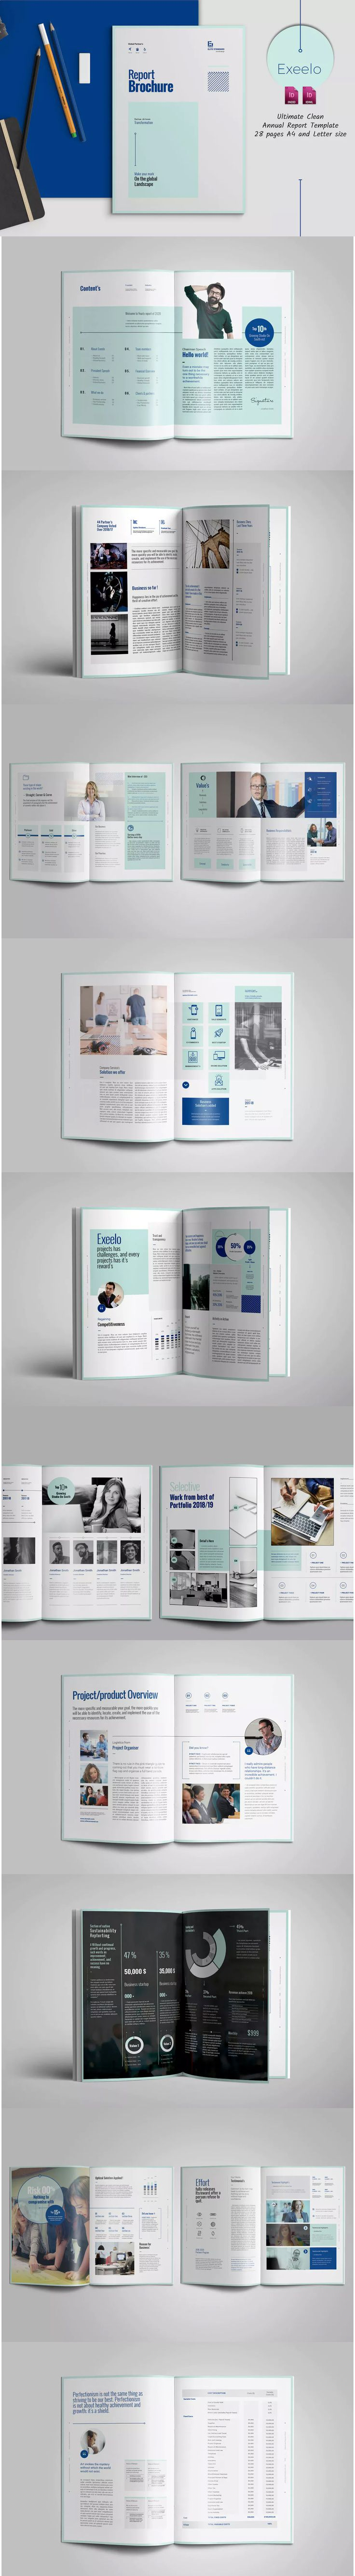 8 best Annual Report Templates images on Pinterest | Annual reports ...